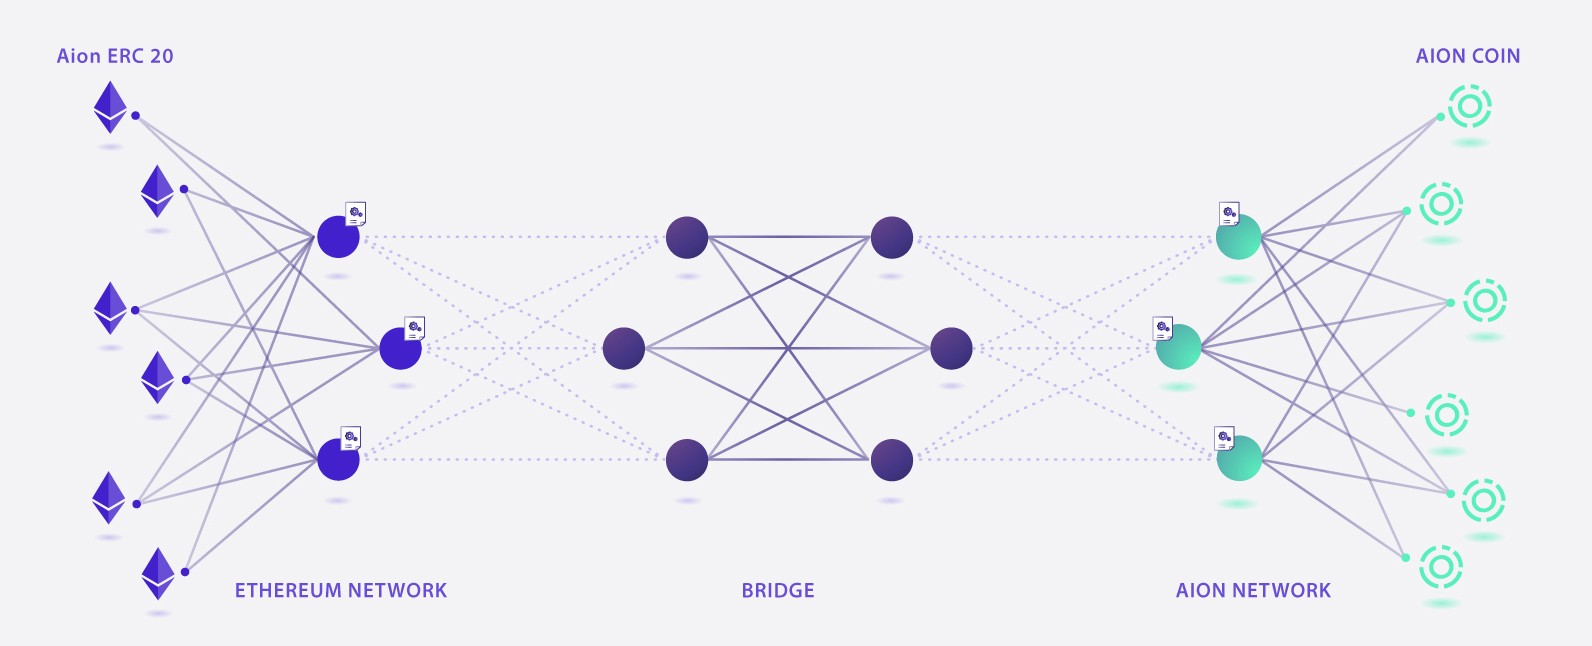 Ethereum AION Coin Bridge